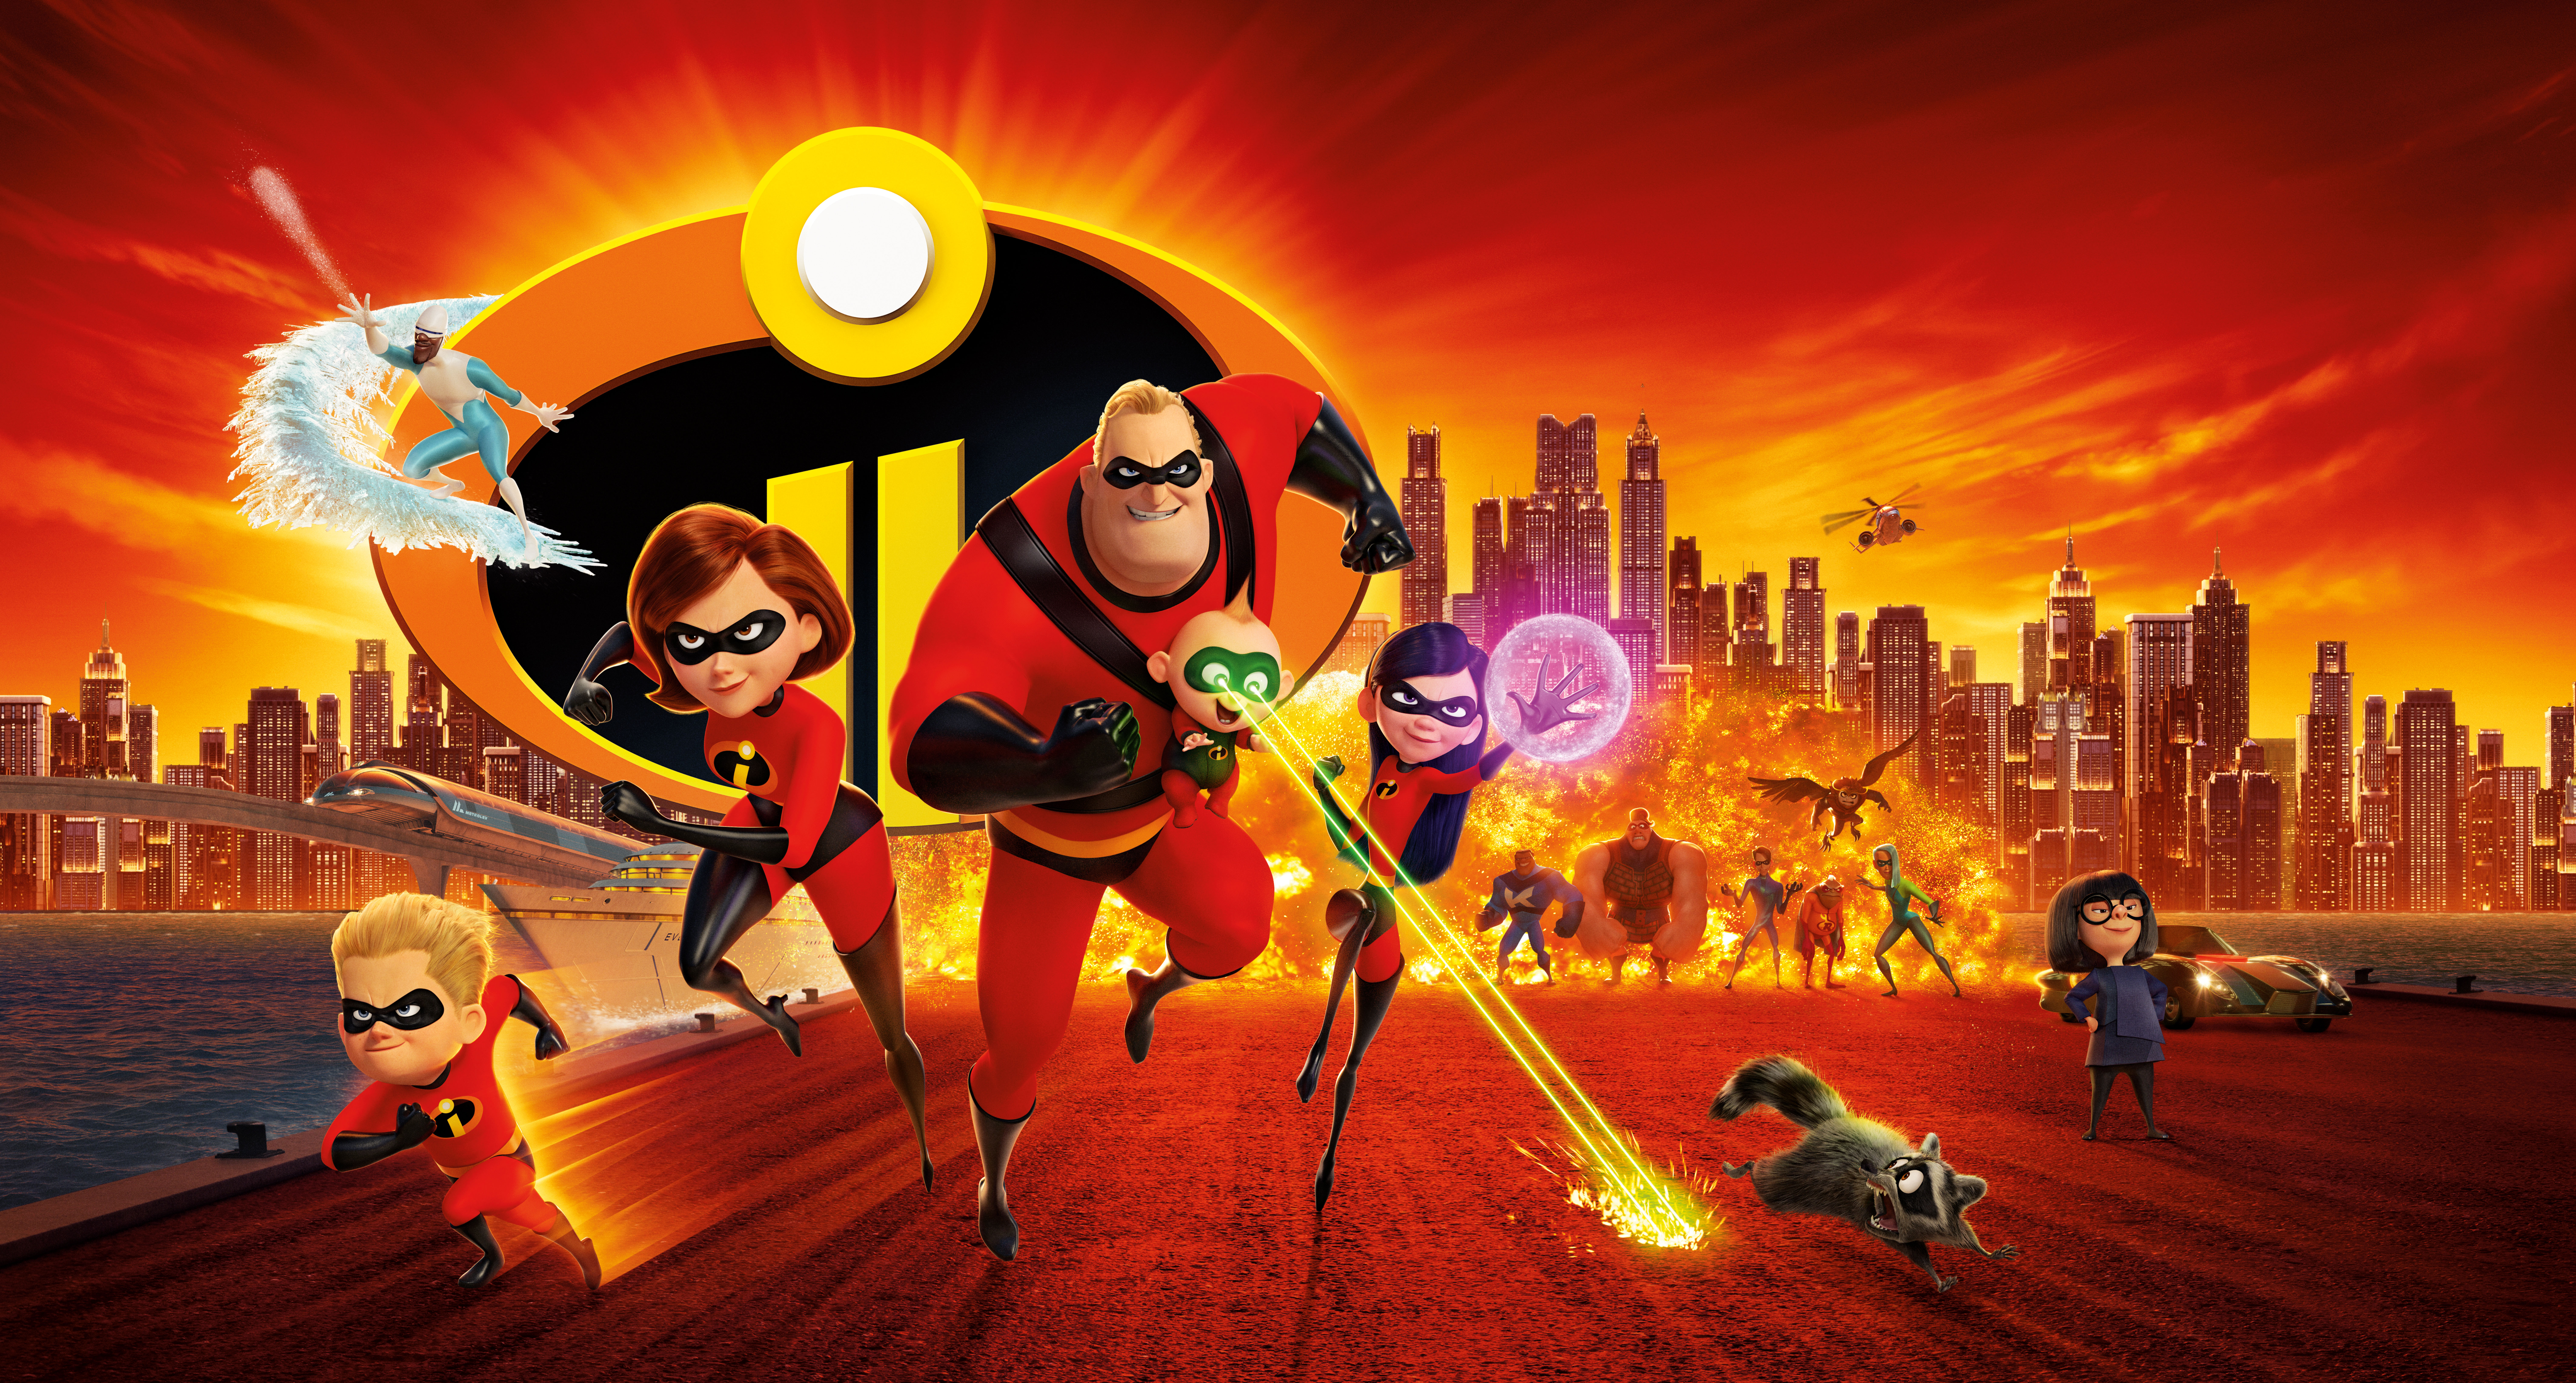 2560x1440 The Incredibles 2 12k 1440P Resolution HD 4k